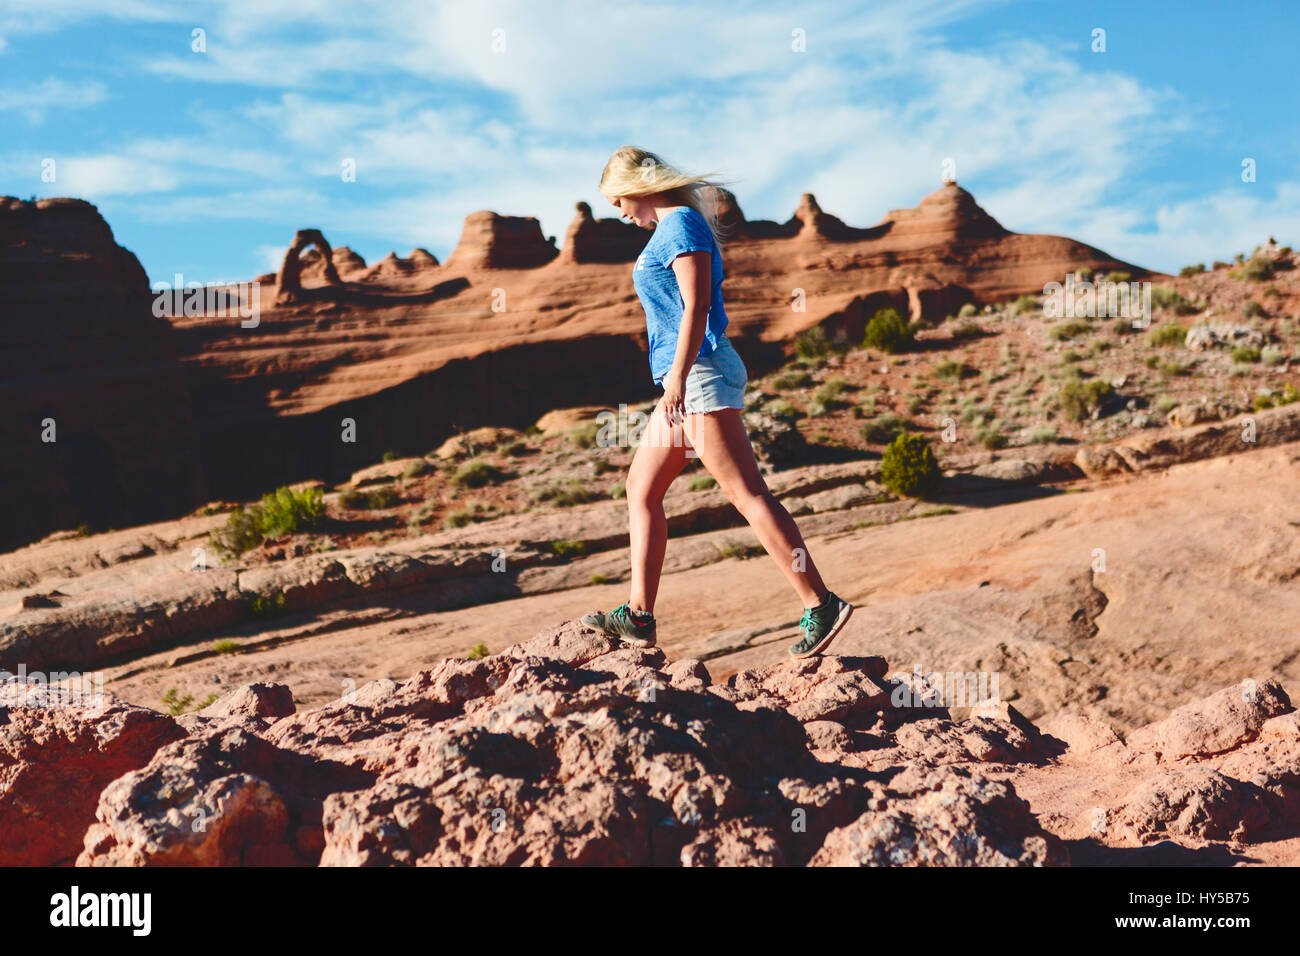 USA, Utah, Moab, Arches National Park, Woman walking on rocks - Stock Image